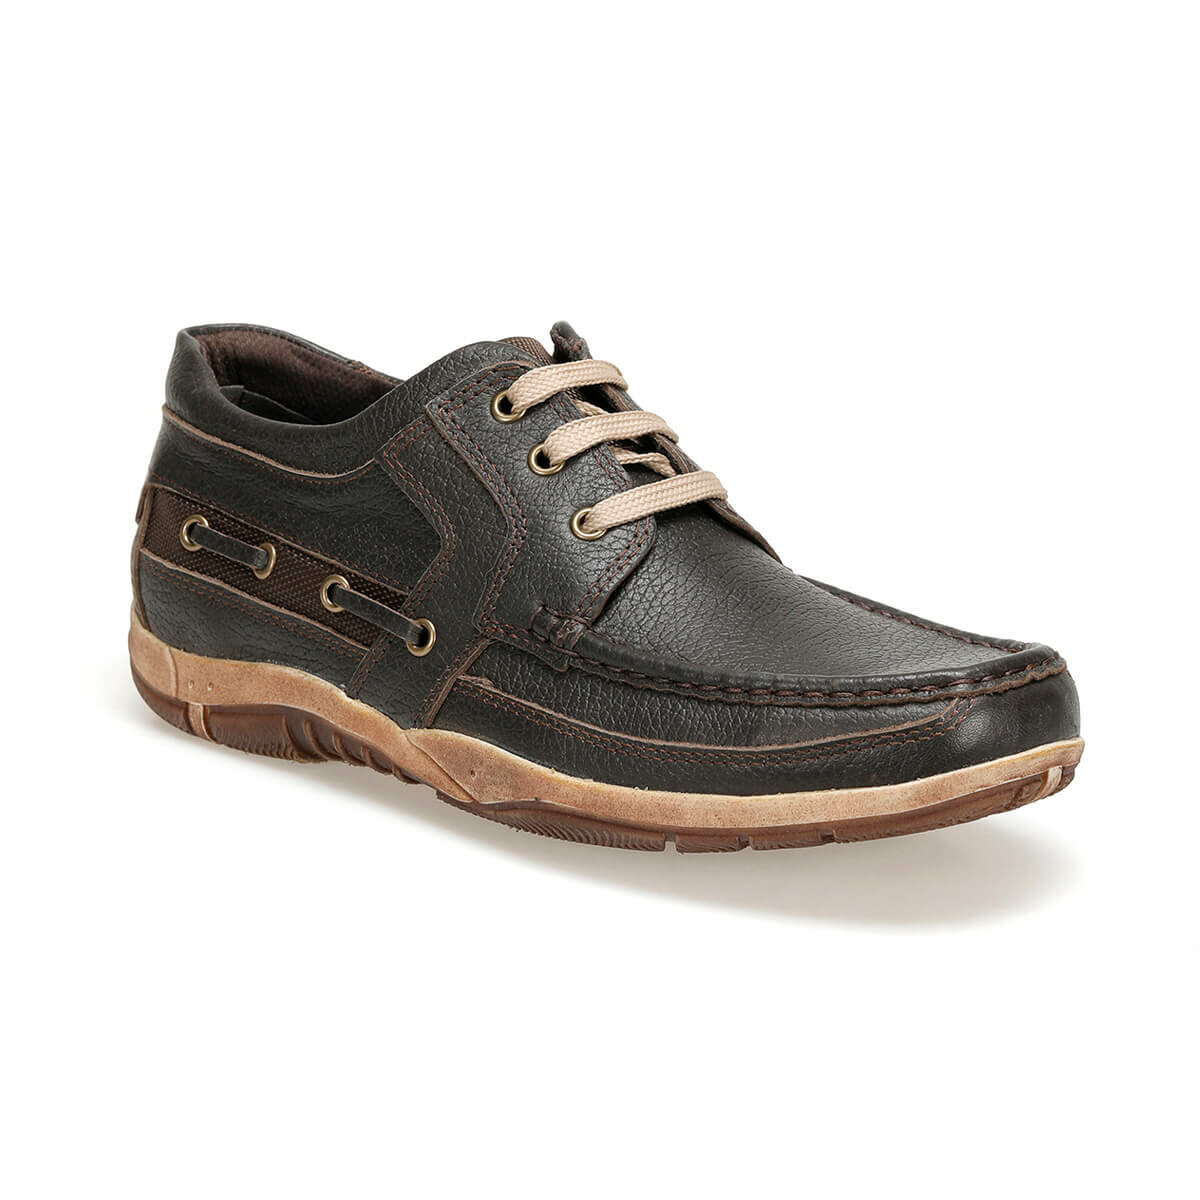 FLO 5076-D C 19 Brown Men Shoes Oxide